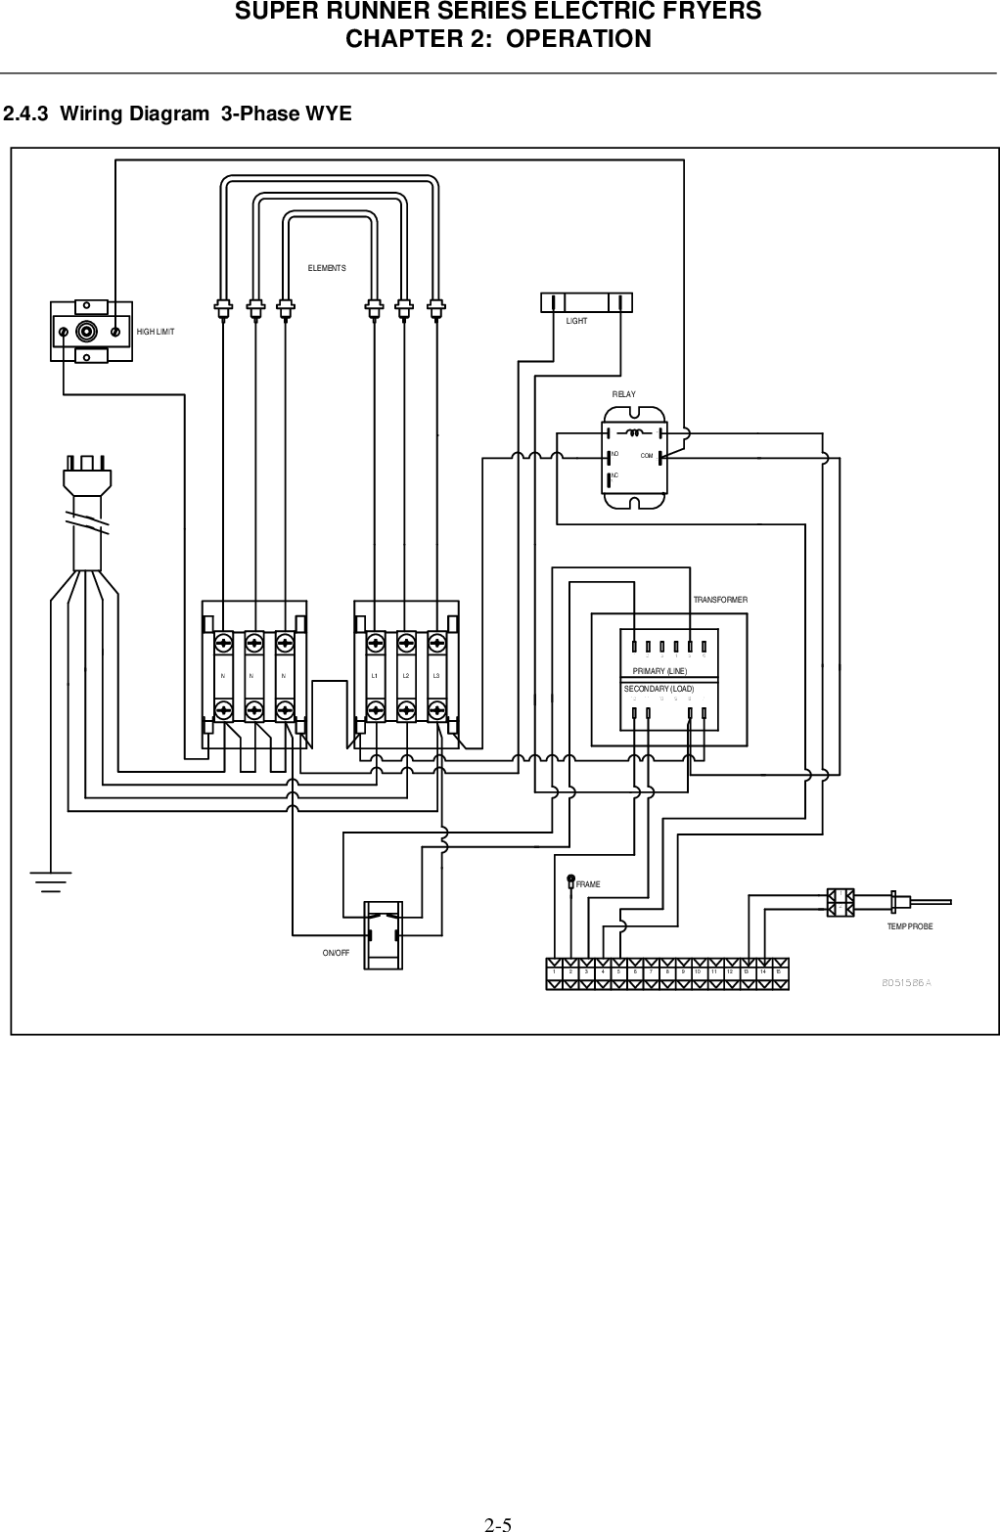 medium resolution of frymaster wiring diagram wiring diagrams wni frymaster wiring diagram frymaster wiring diagram